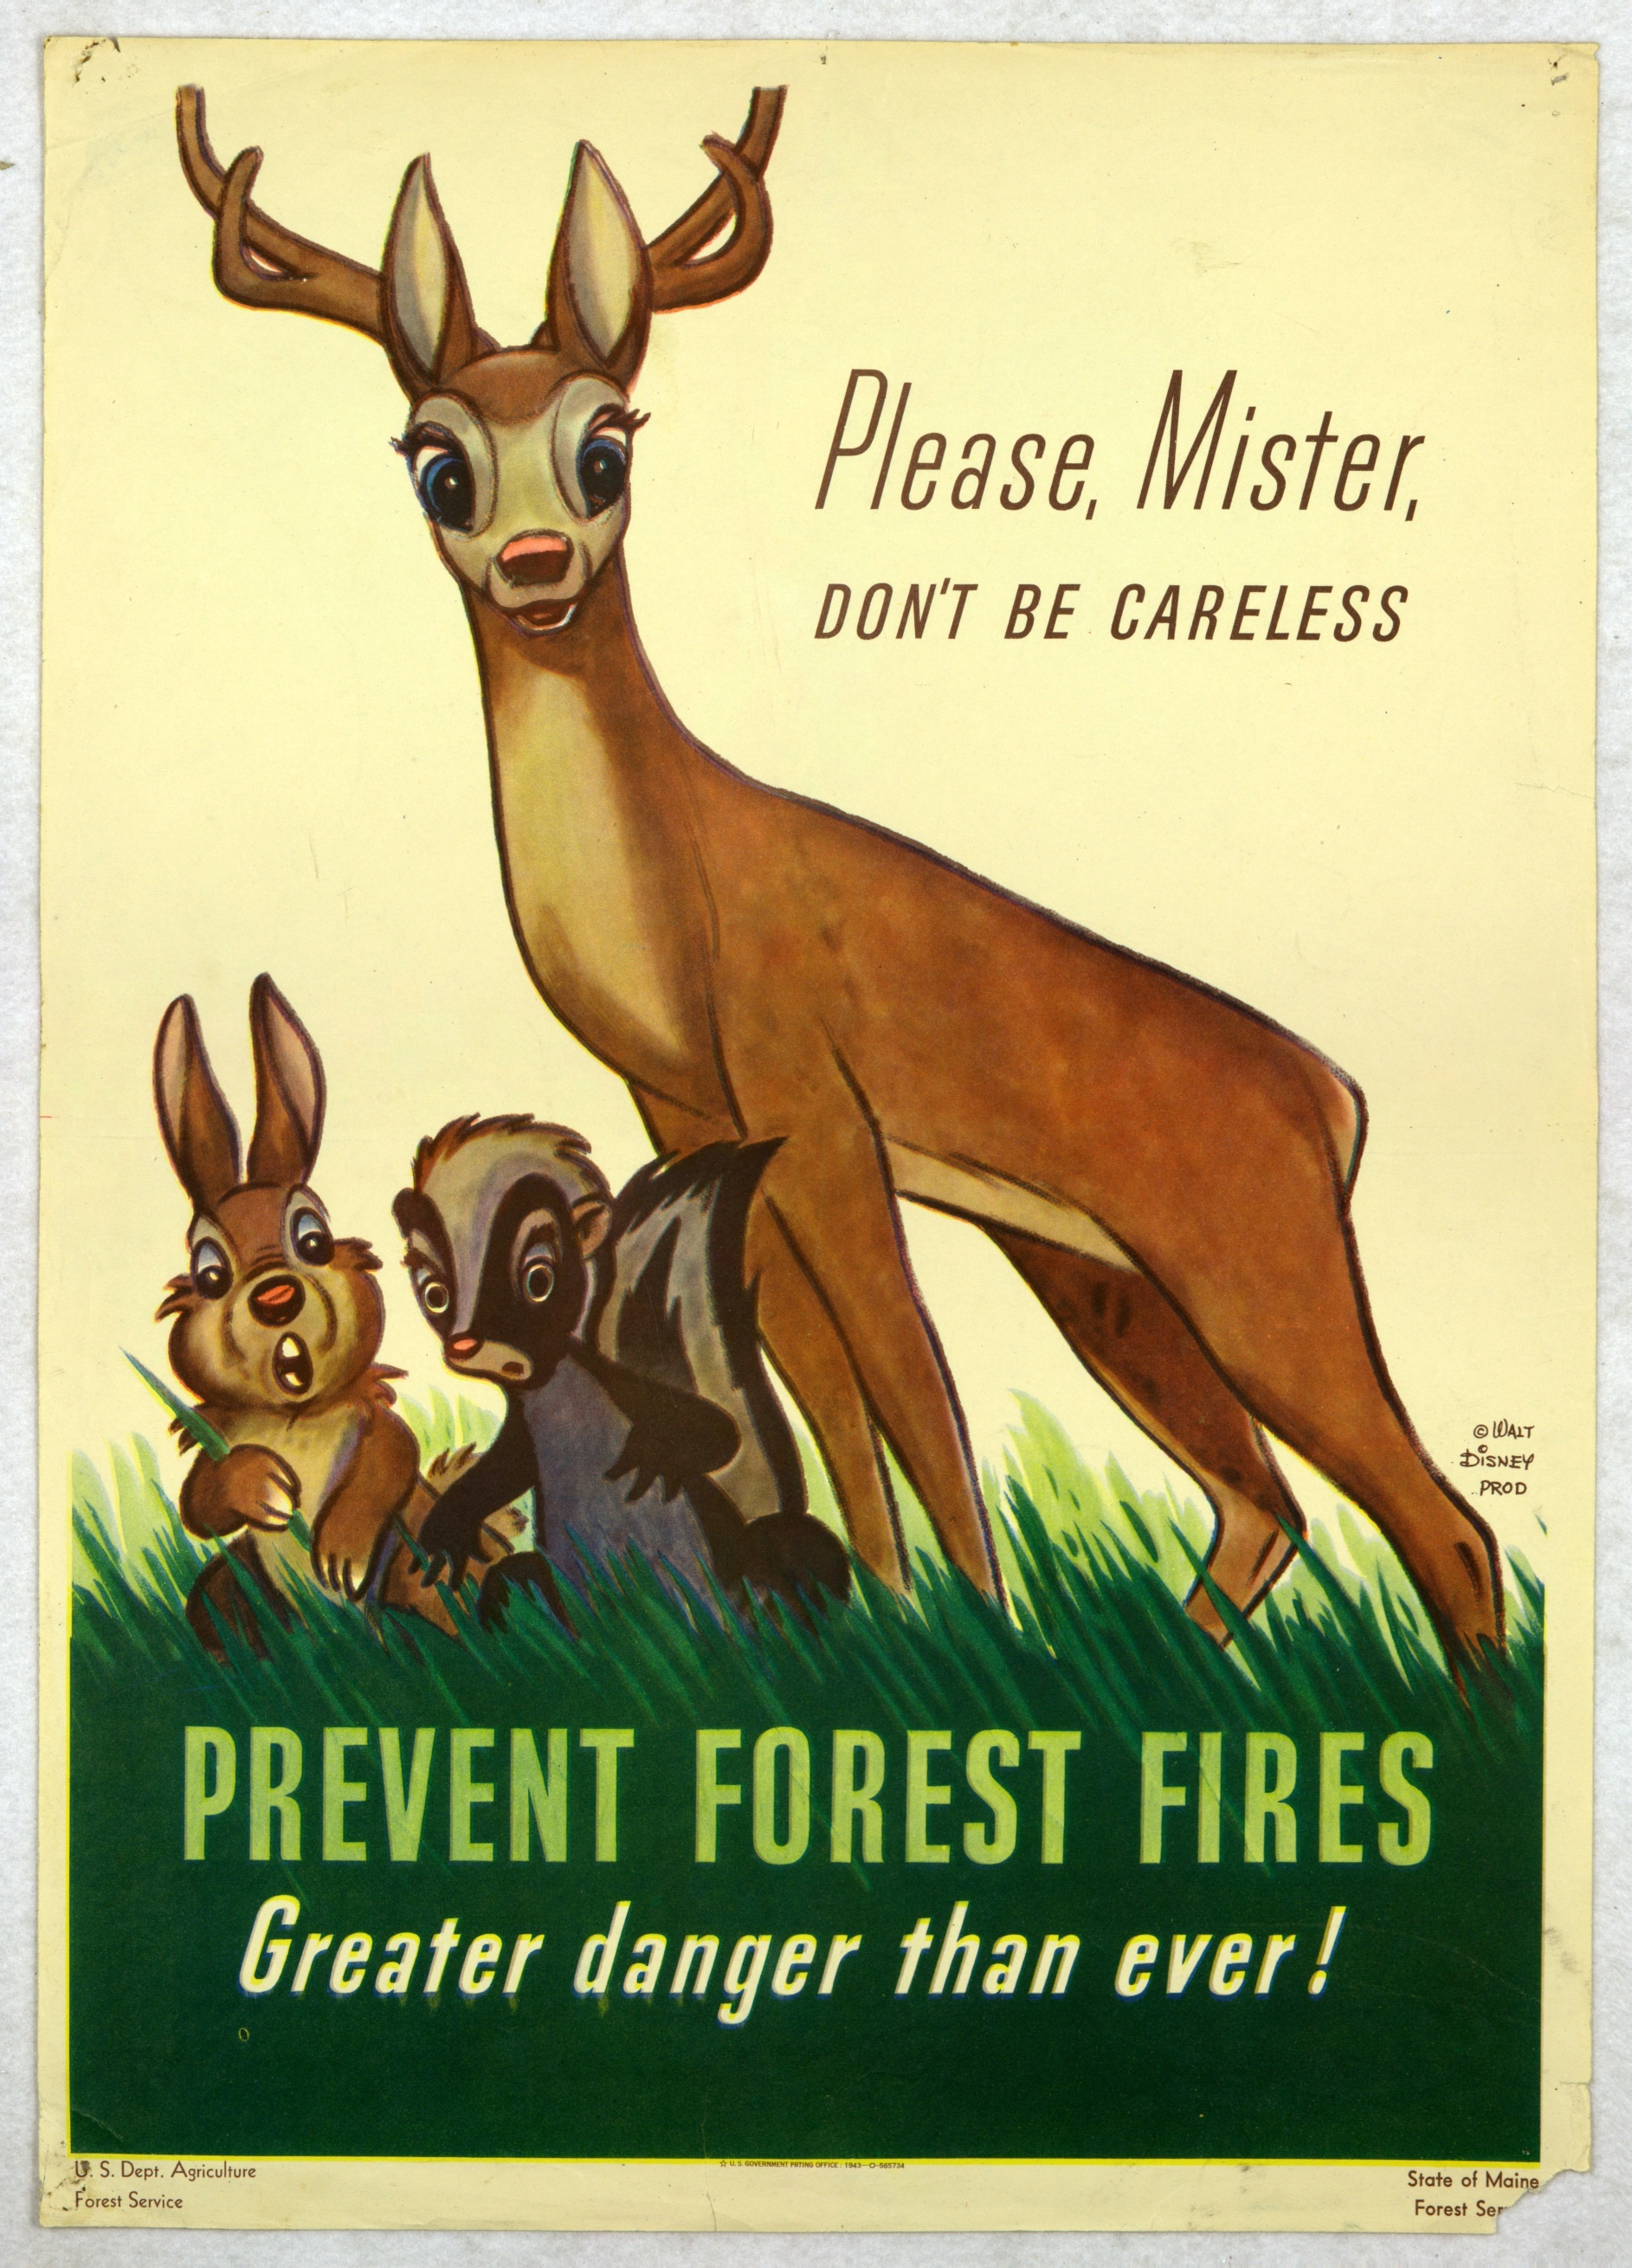 In 1943, Disney allowed the government use of his characters for a fire prevention campaign. After a year, it was their responsibility to come up with a new mascot. That's how Smokey the Bear was born.